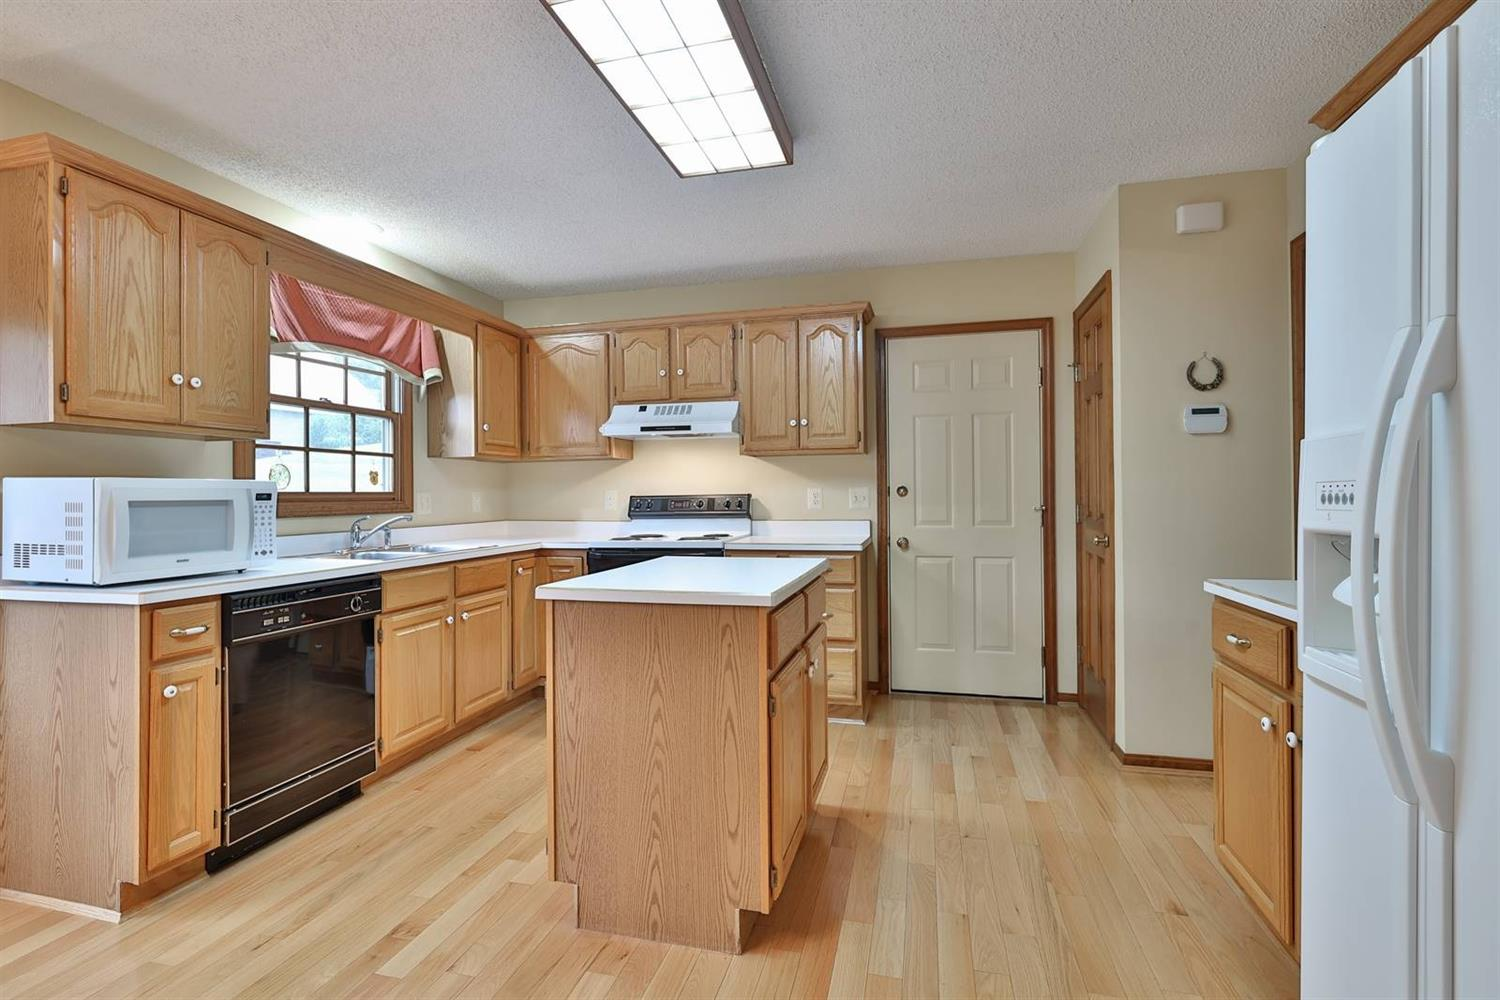 Enjoy the hardwood floors and a window over the sink that looks out at the backyard....